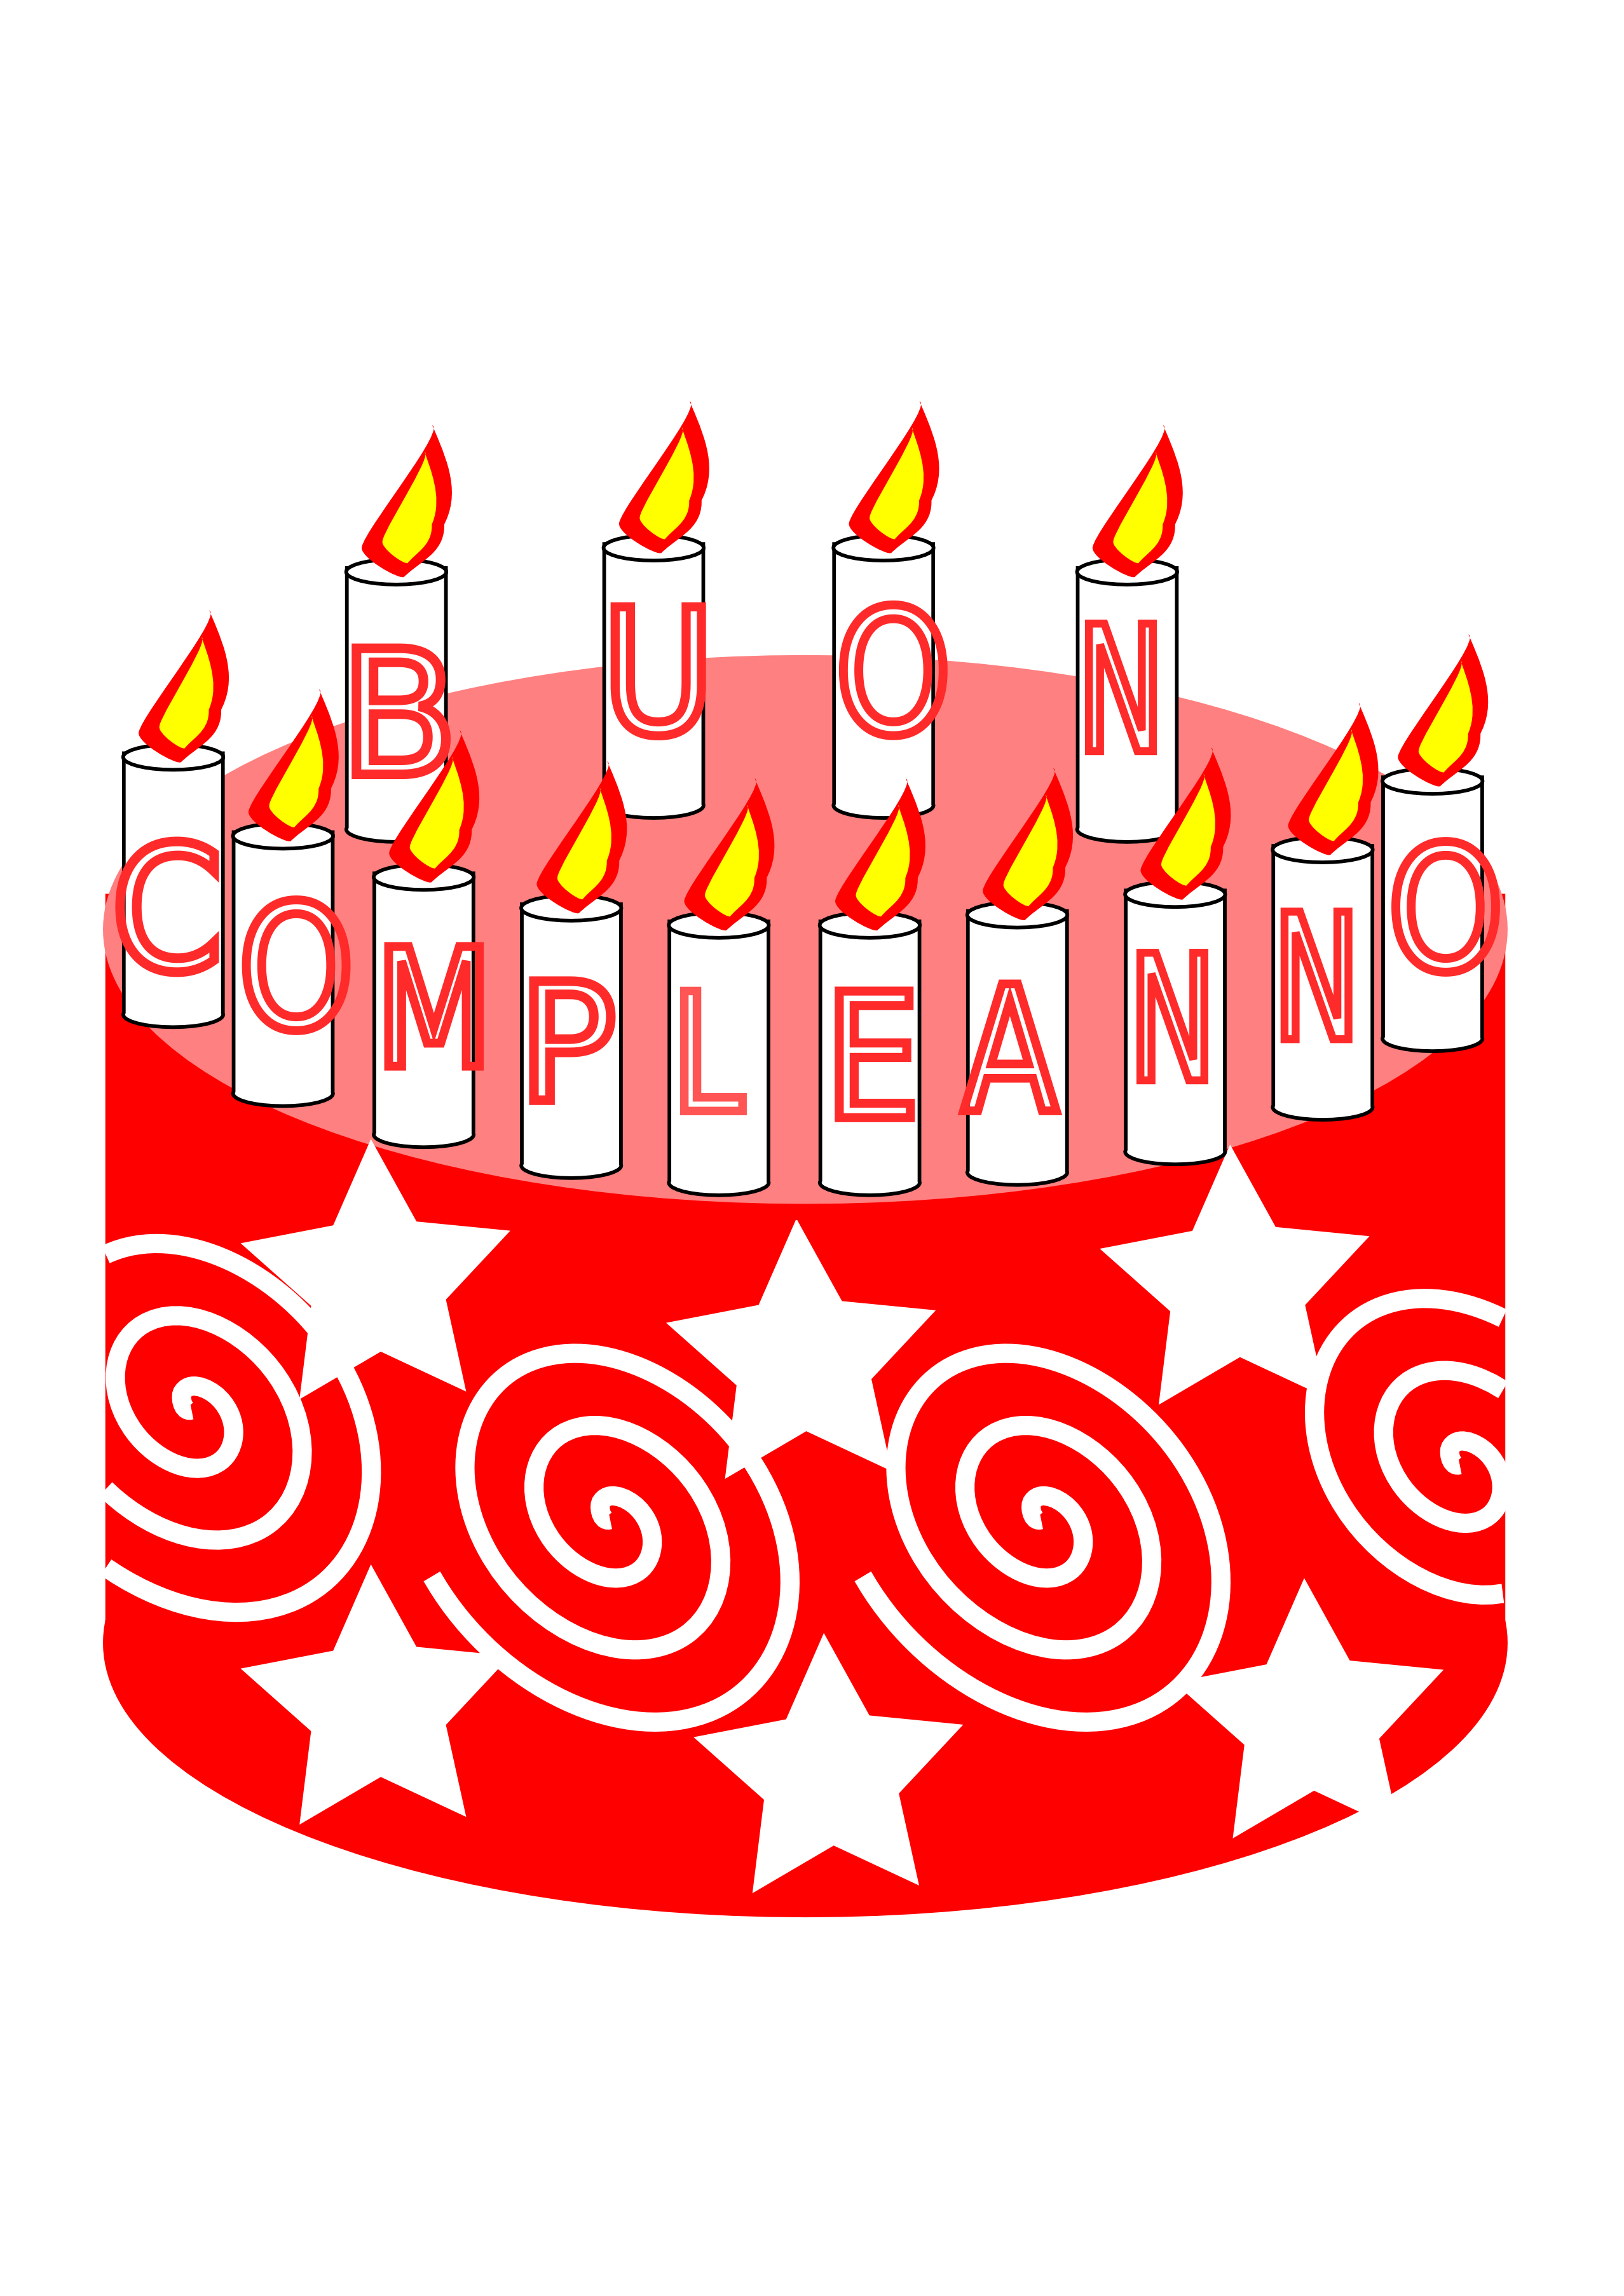 Birthday Cake Png - ClipArt Best